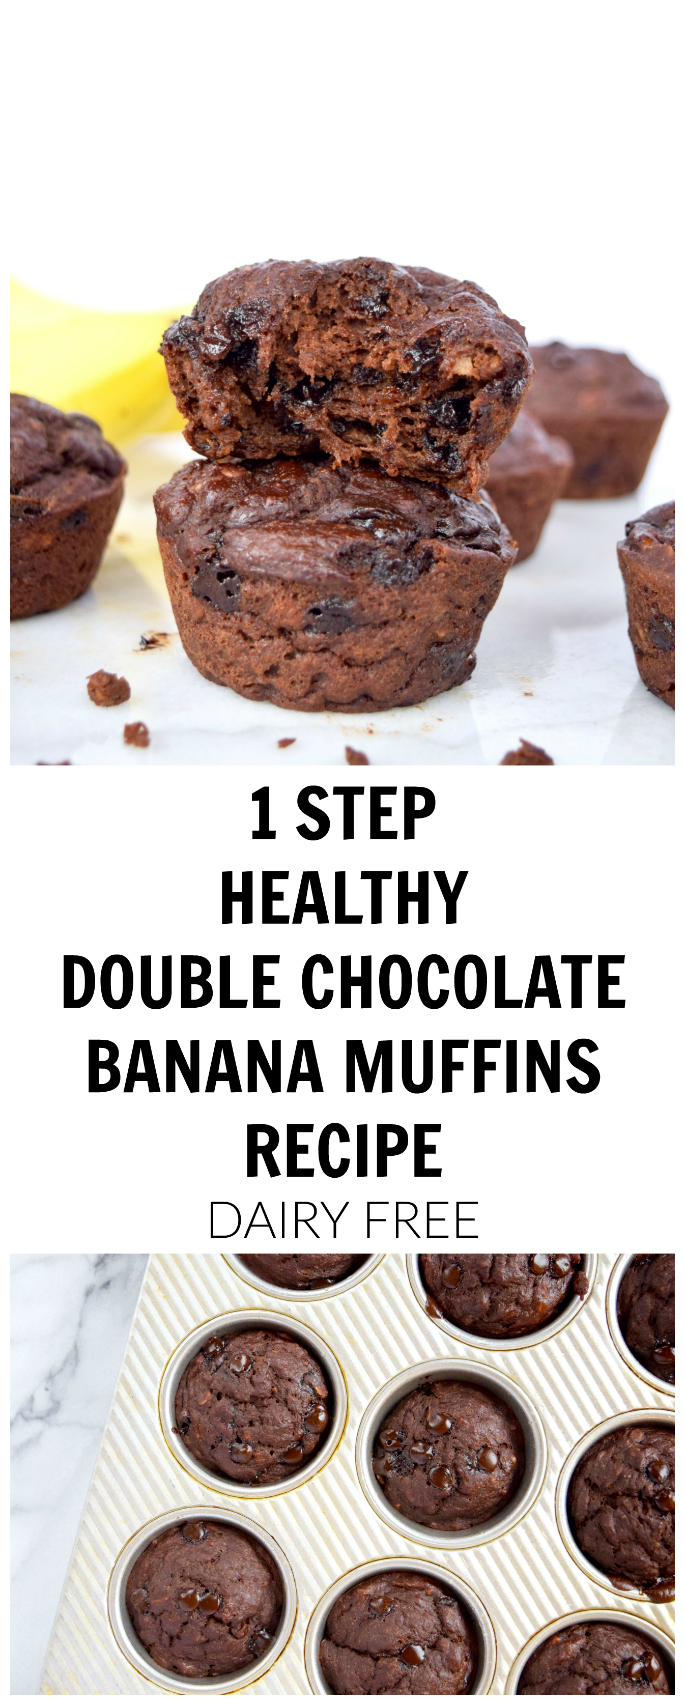 1 STEP HEALTHY DOUBLE CHOCOLATE BANANA MUFFINS DAIRY FREE